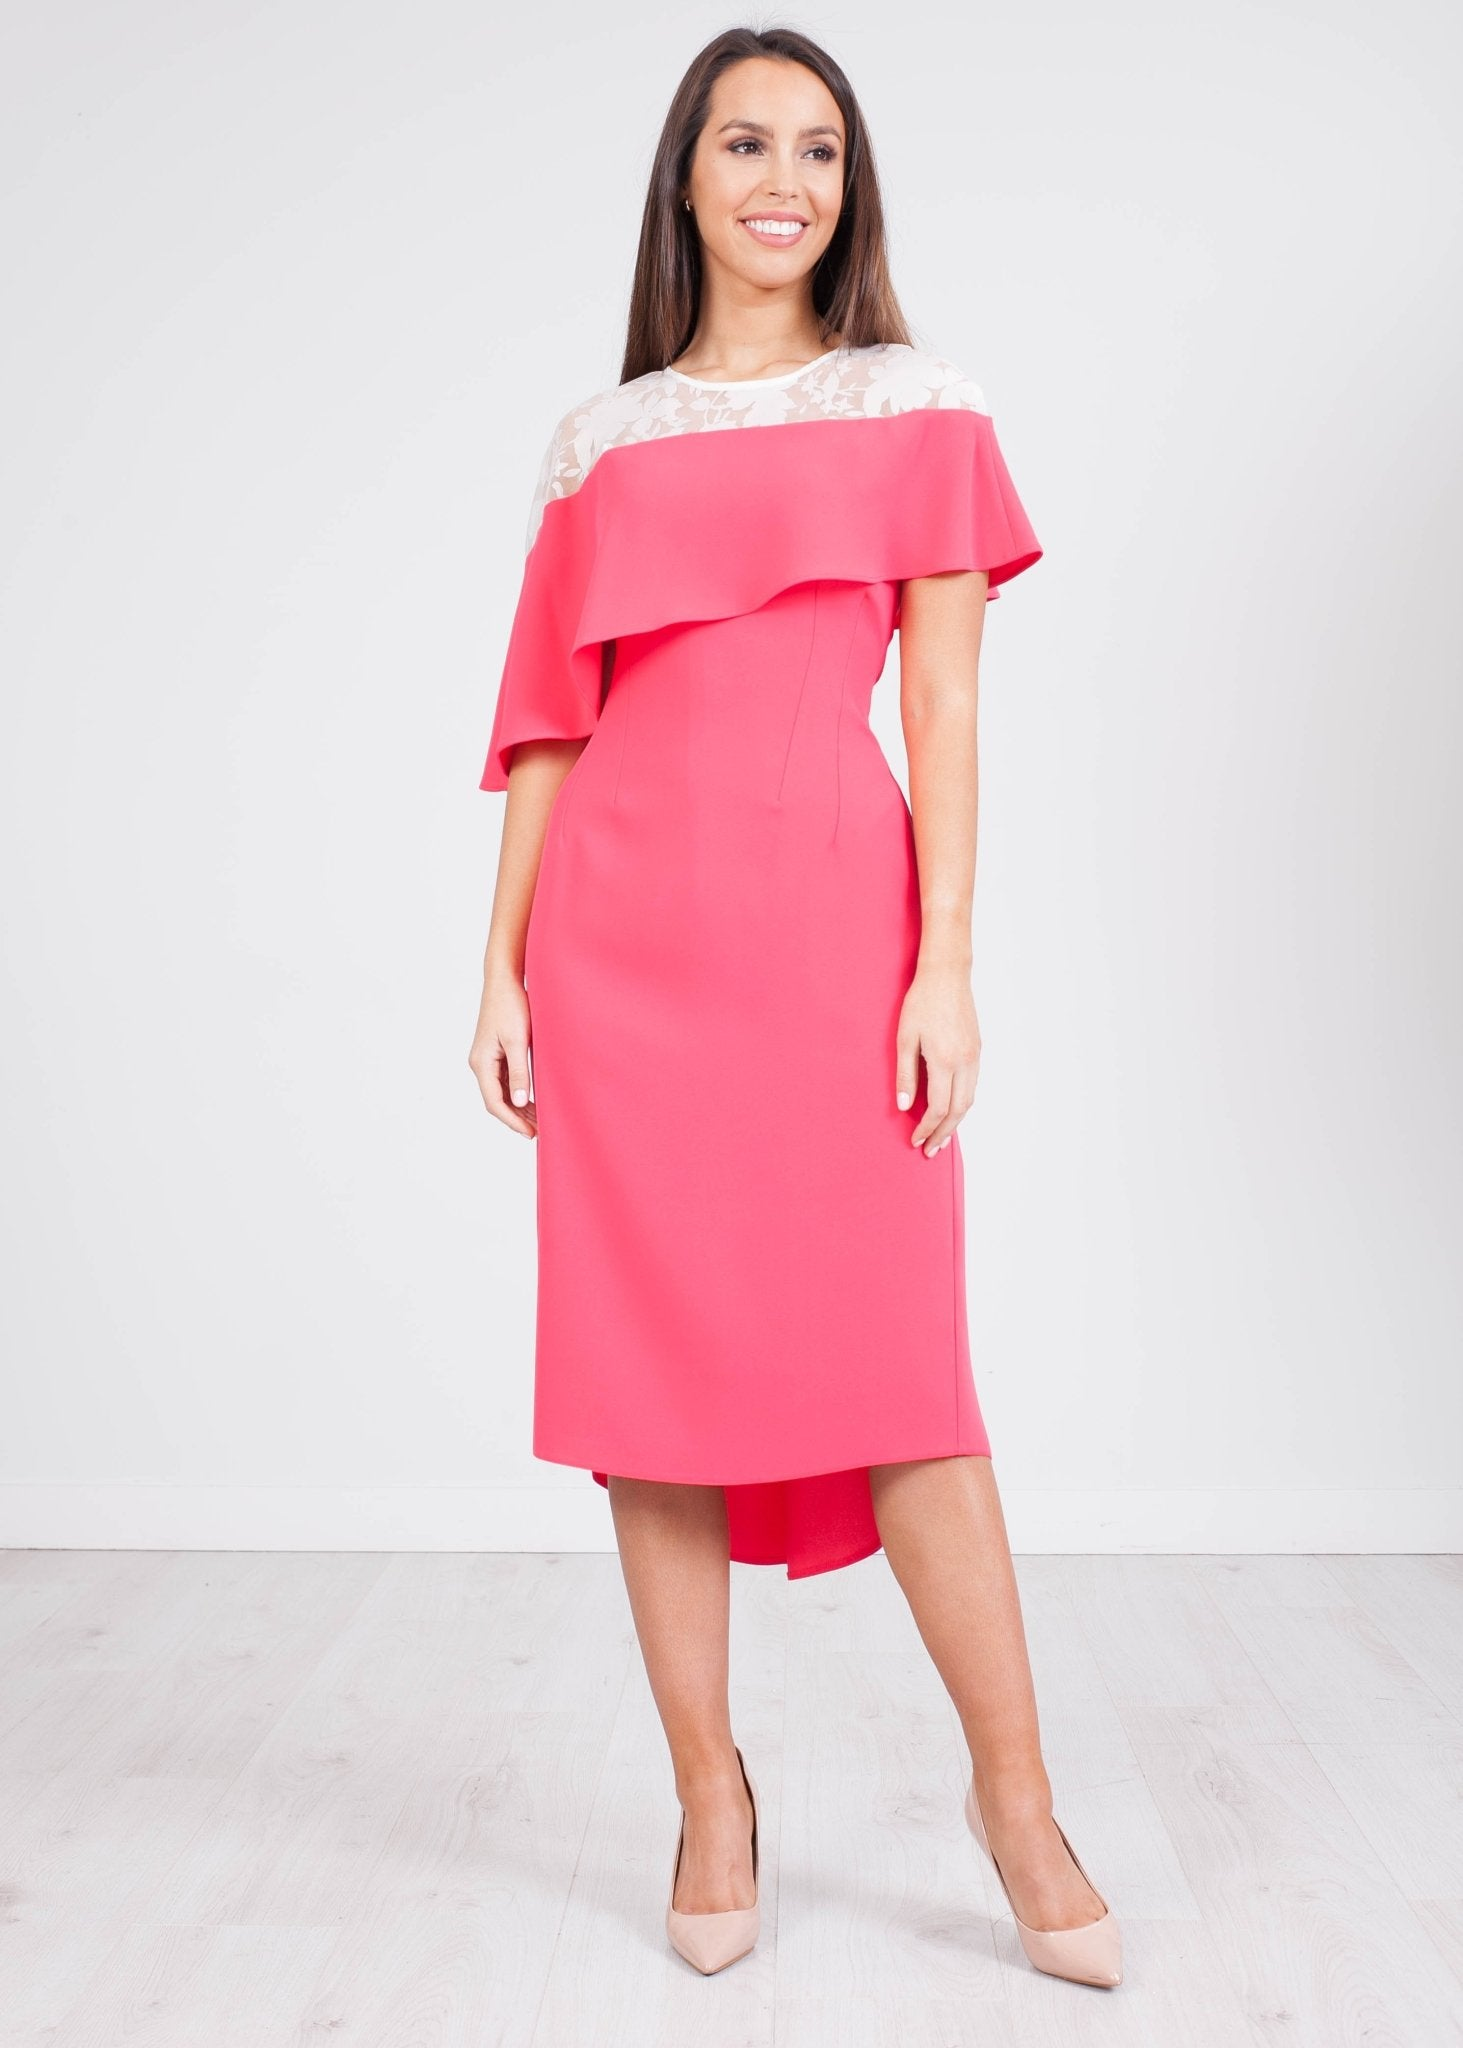 Carla Pink Ivanna Dress - The Walk in Wardrobe